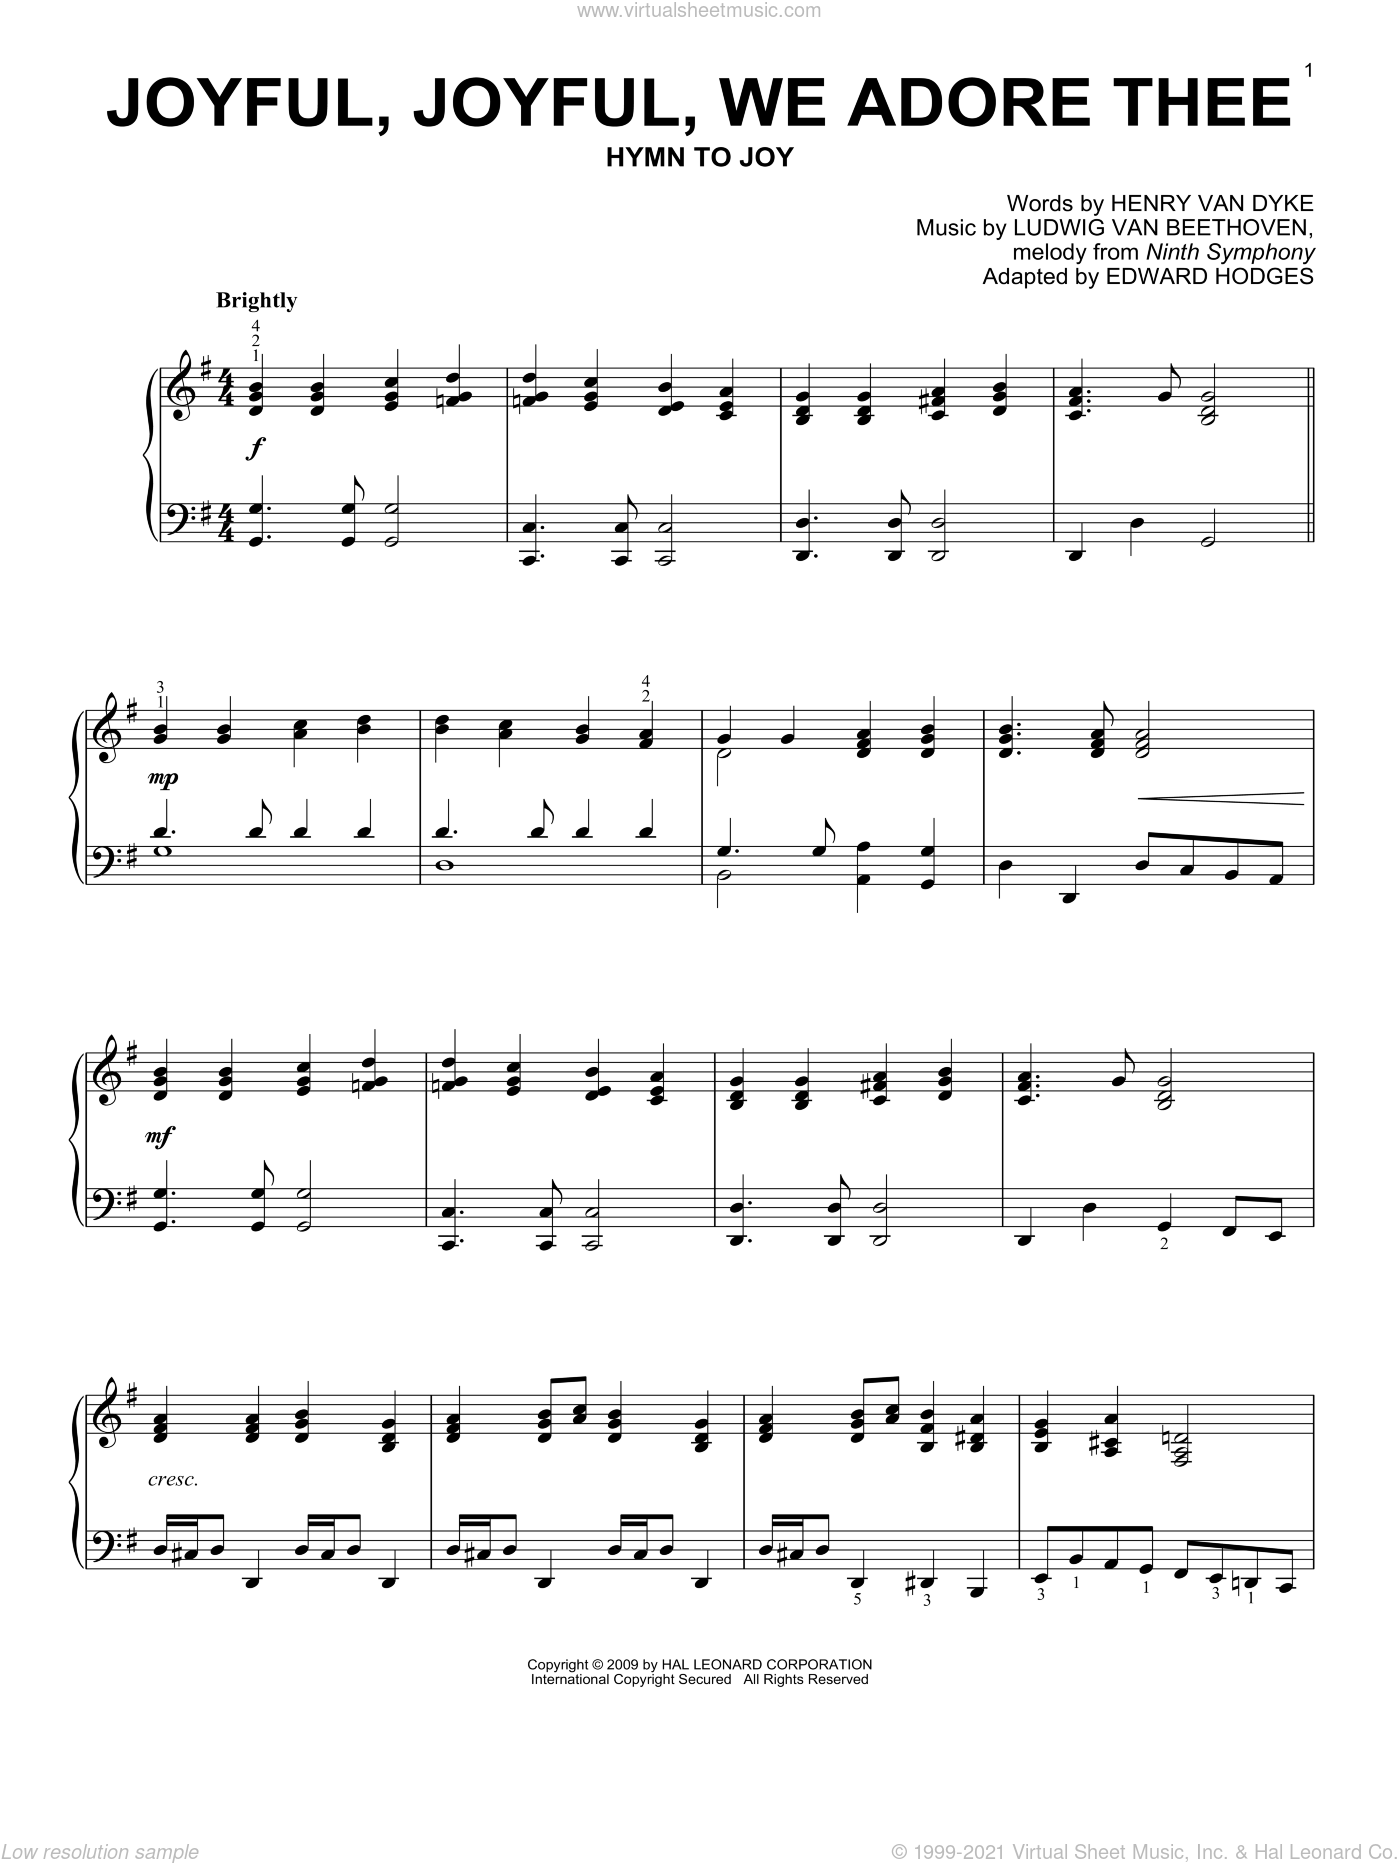 Joyful, Joyful, We Adore Thee sheet music for piano solo by Ludwig van Beethoven, Edward Hodges and Henry van Dyke, classical wedding score, intermediate skill level